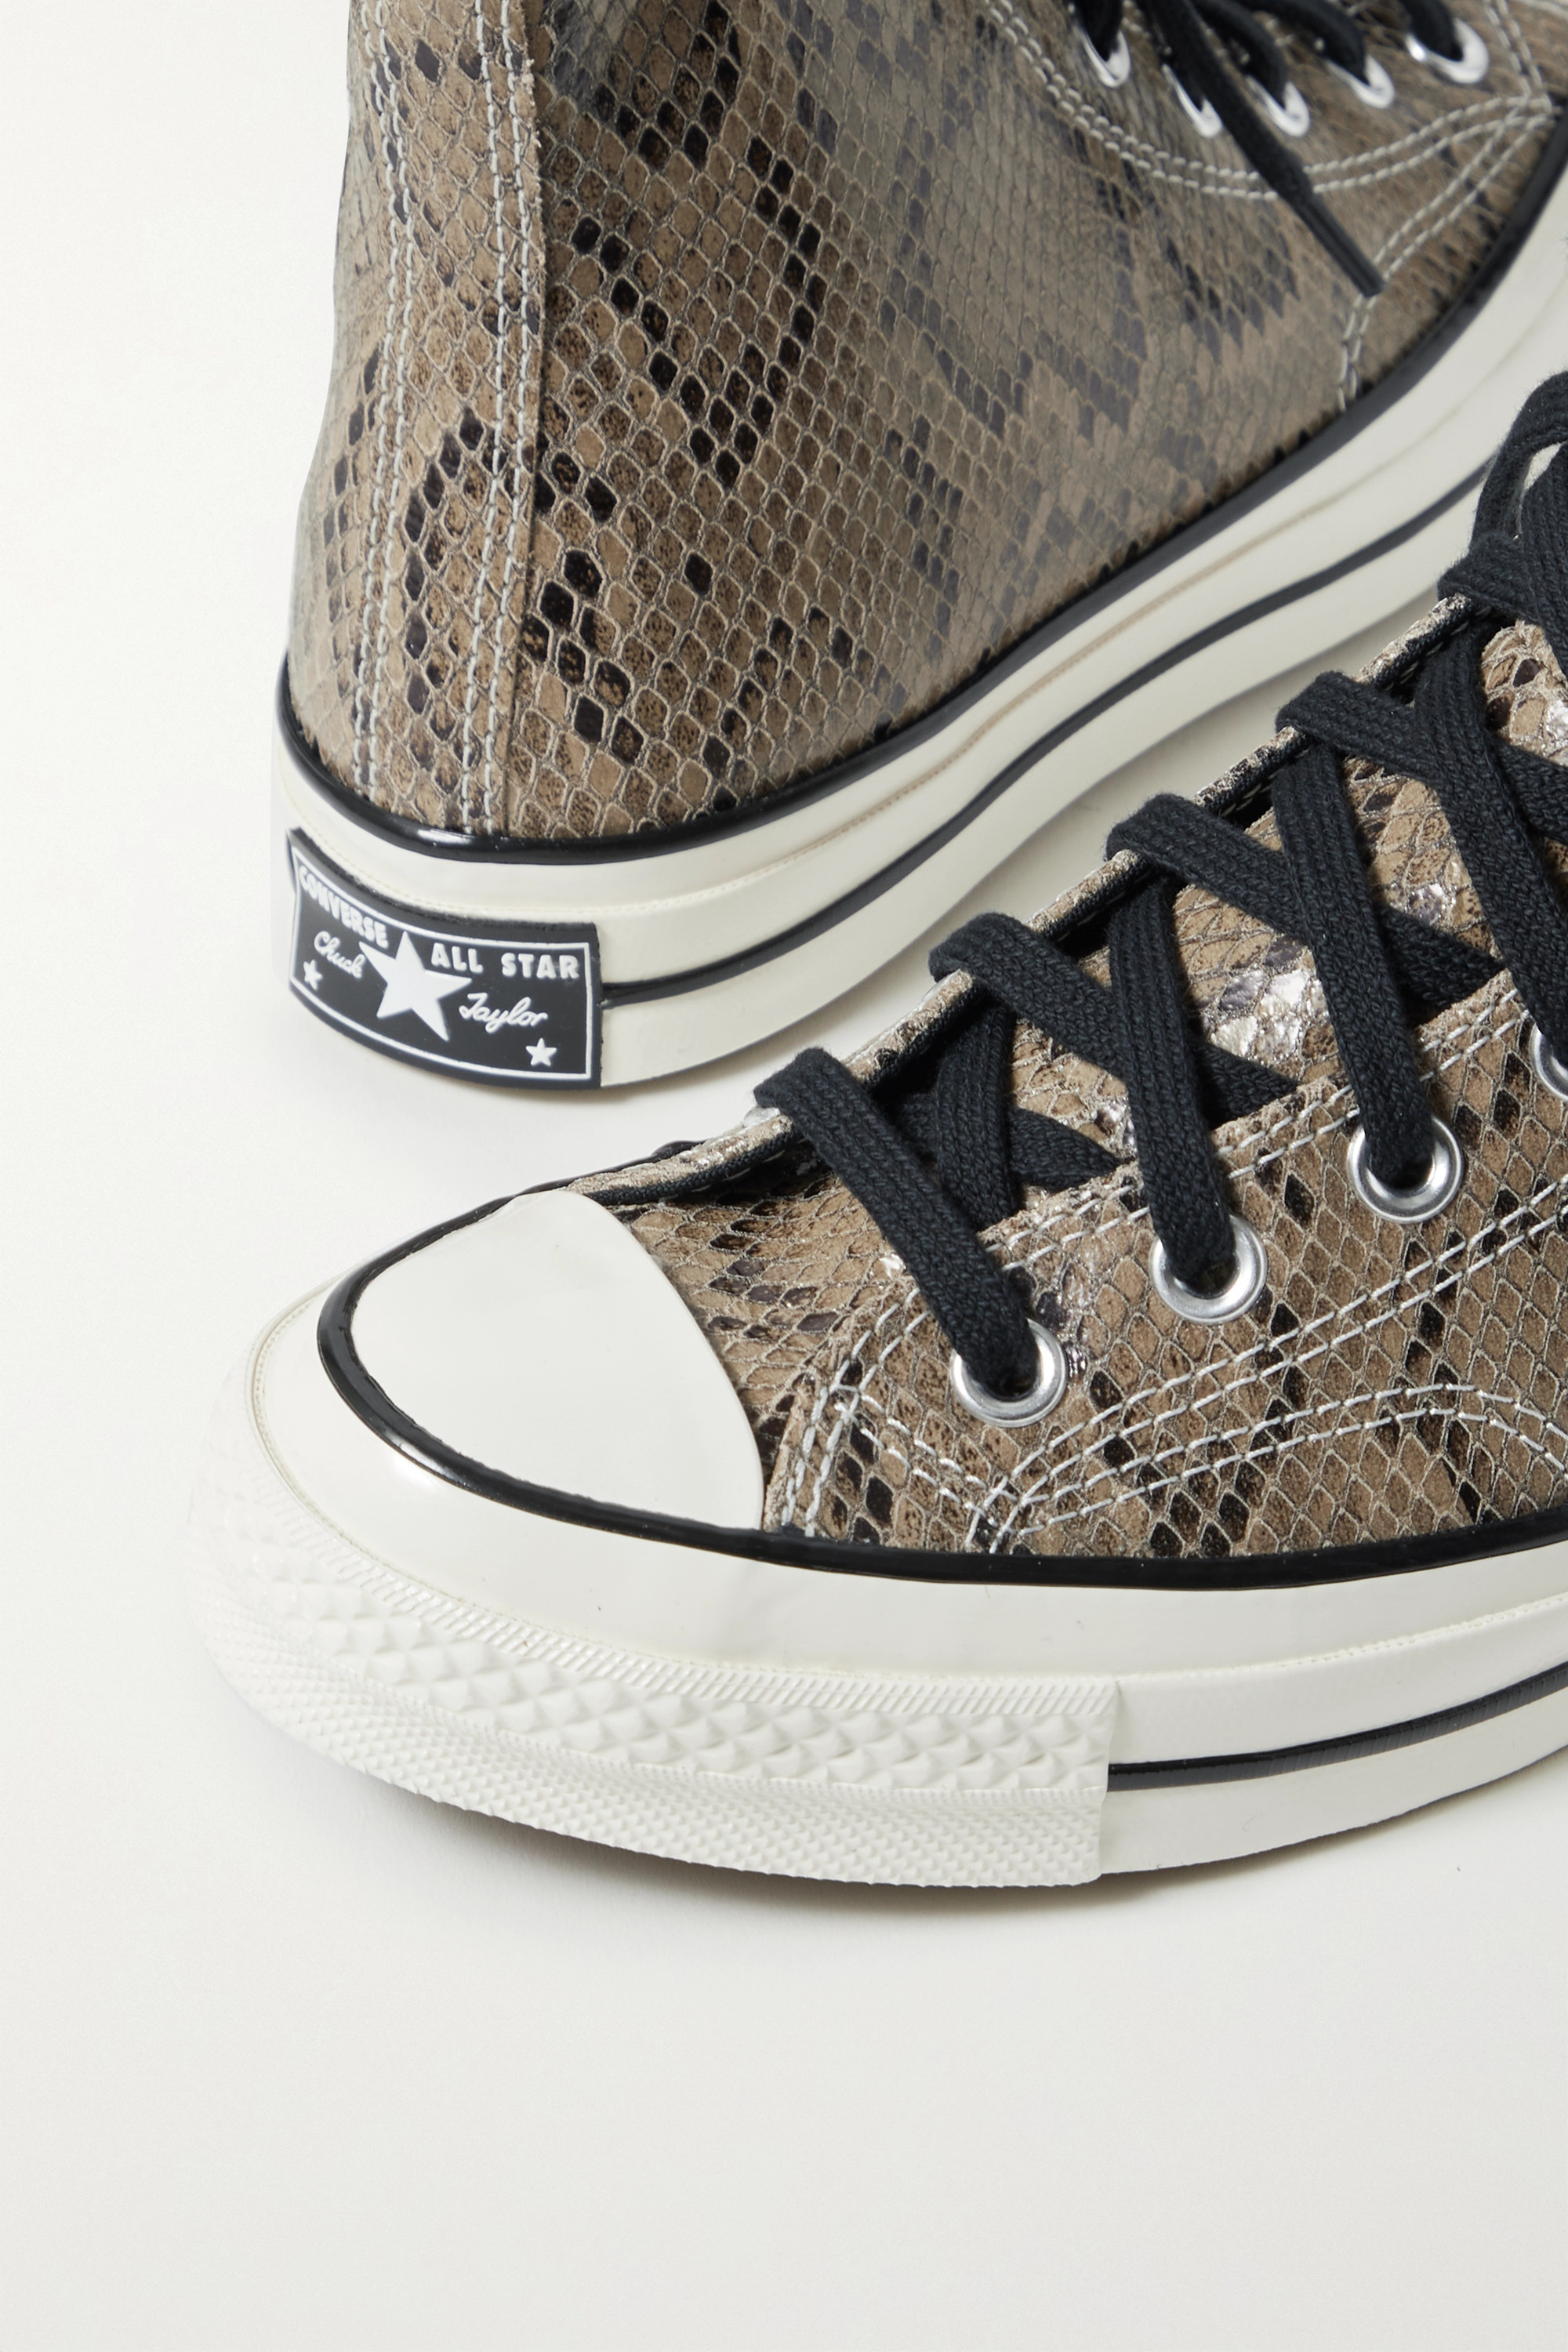 Converse Chuck Taylor All Star 70 snake-effect leather high-top sneakers